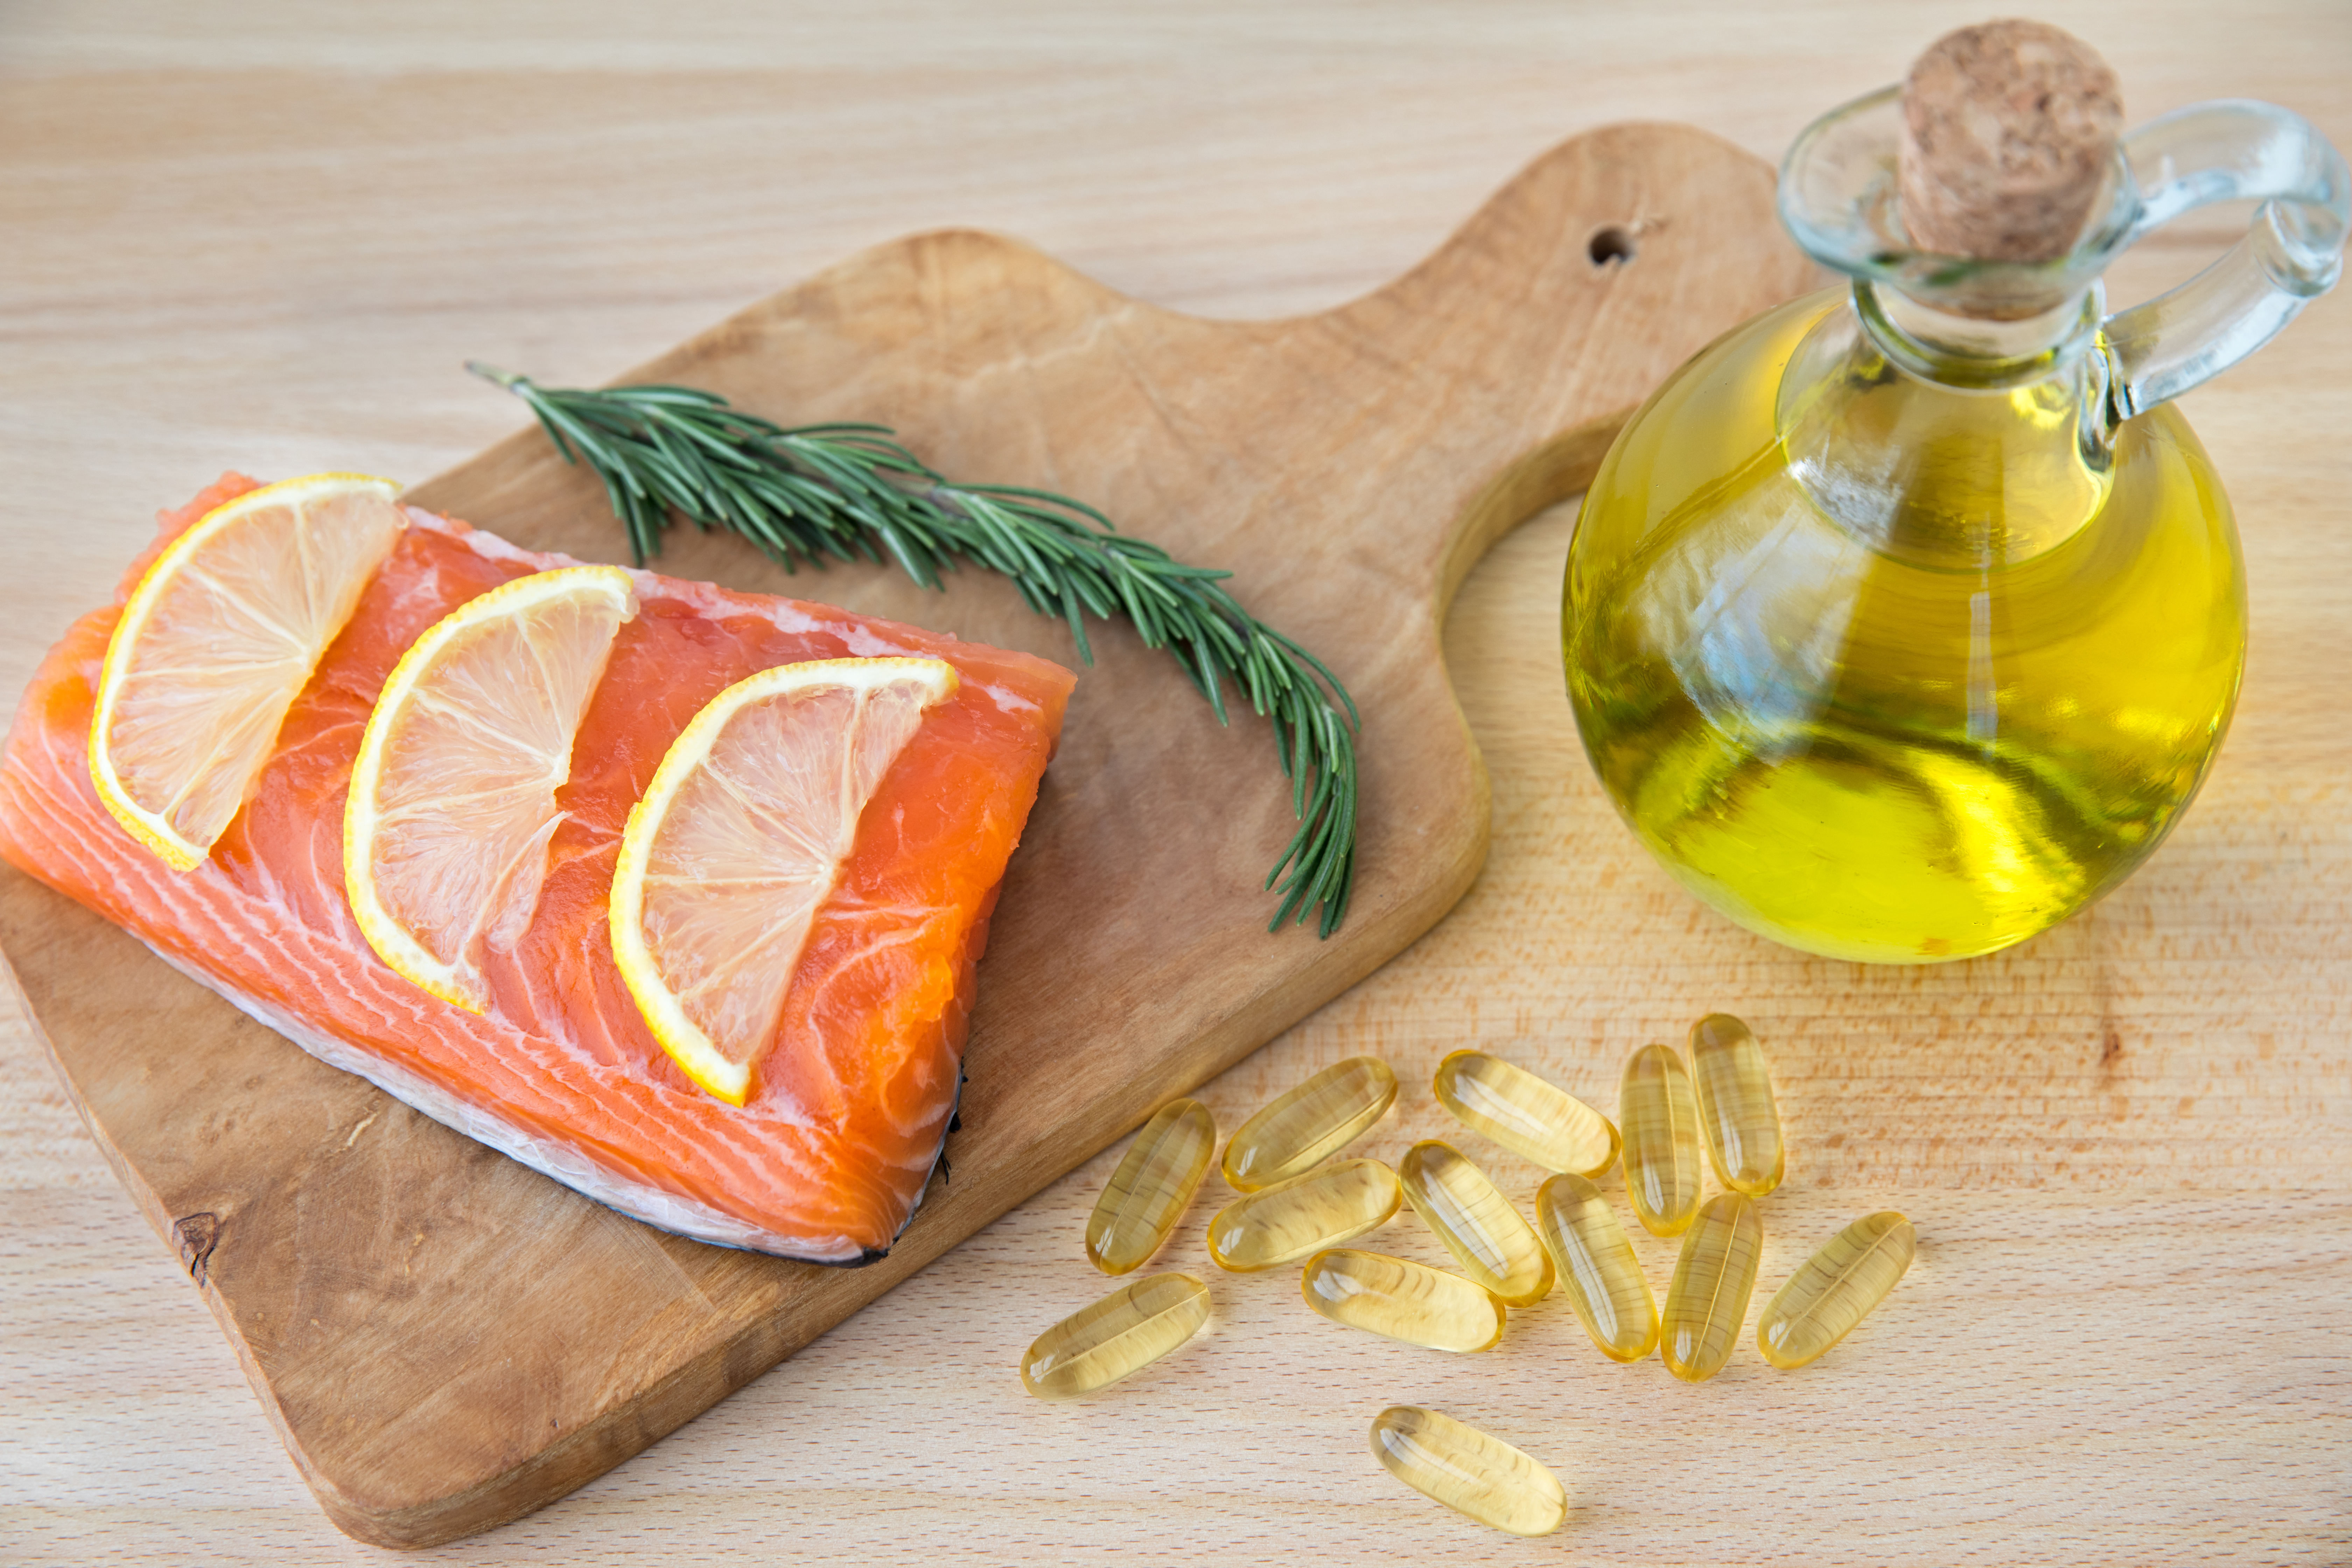 Fish oil capsules, cod liver, and salmon fillet on wooden surface